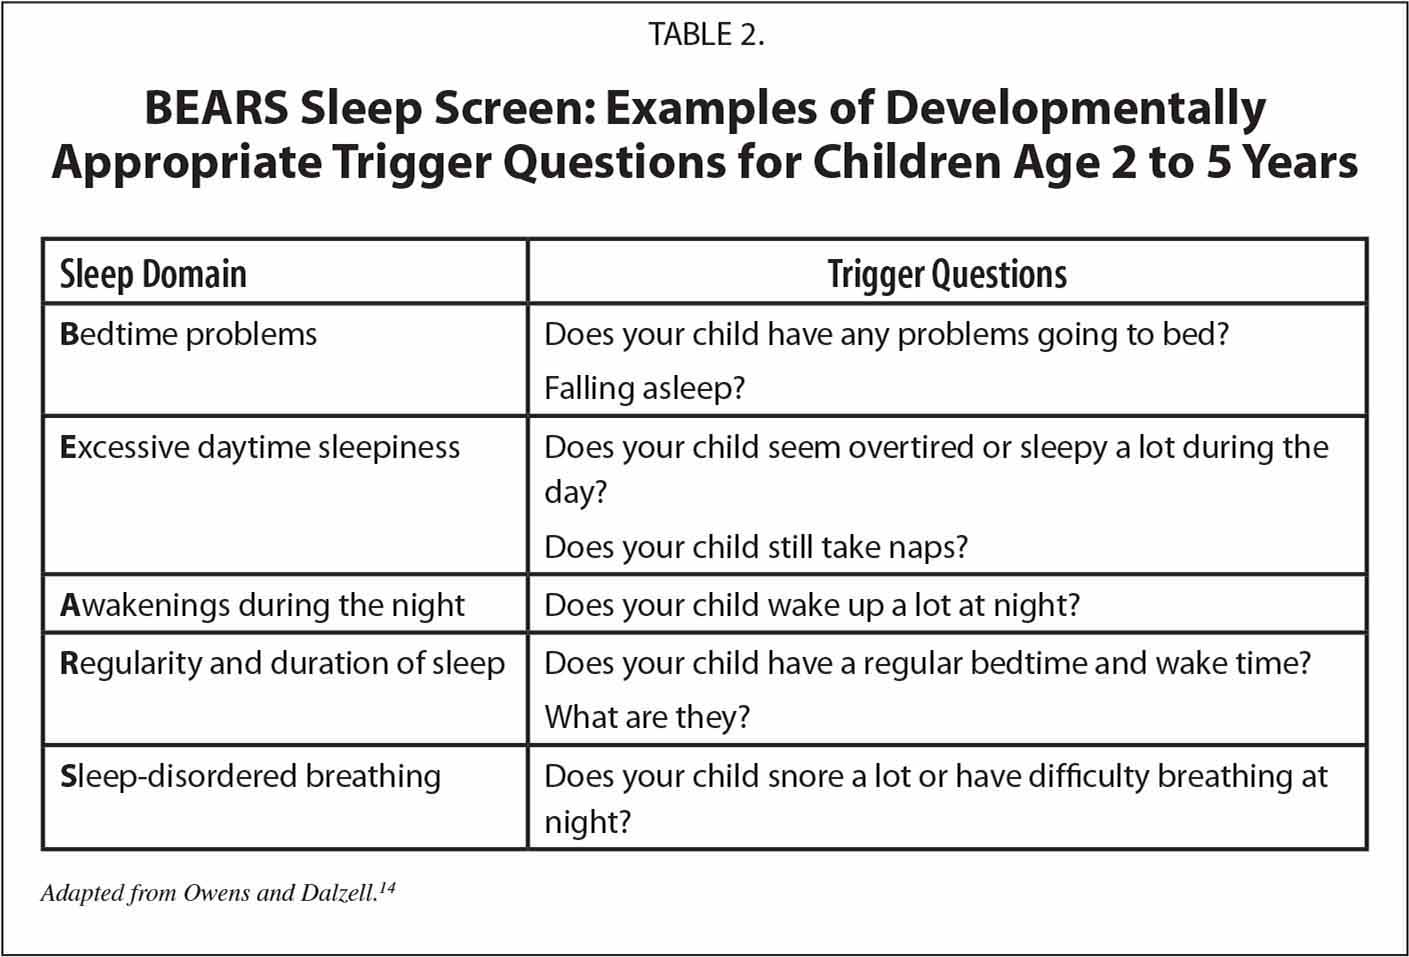 BEARS Sleep Screen: Examples of Developmentally Appropriate Trigger Questions for Children Age 2 to 5 Years